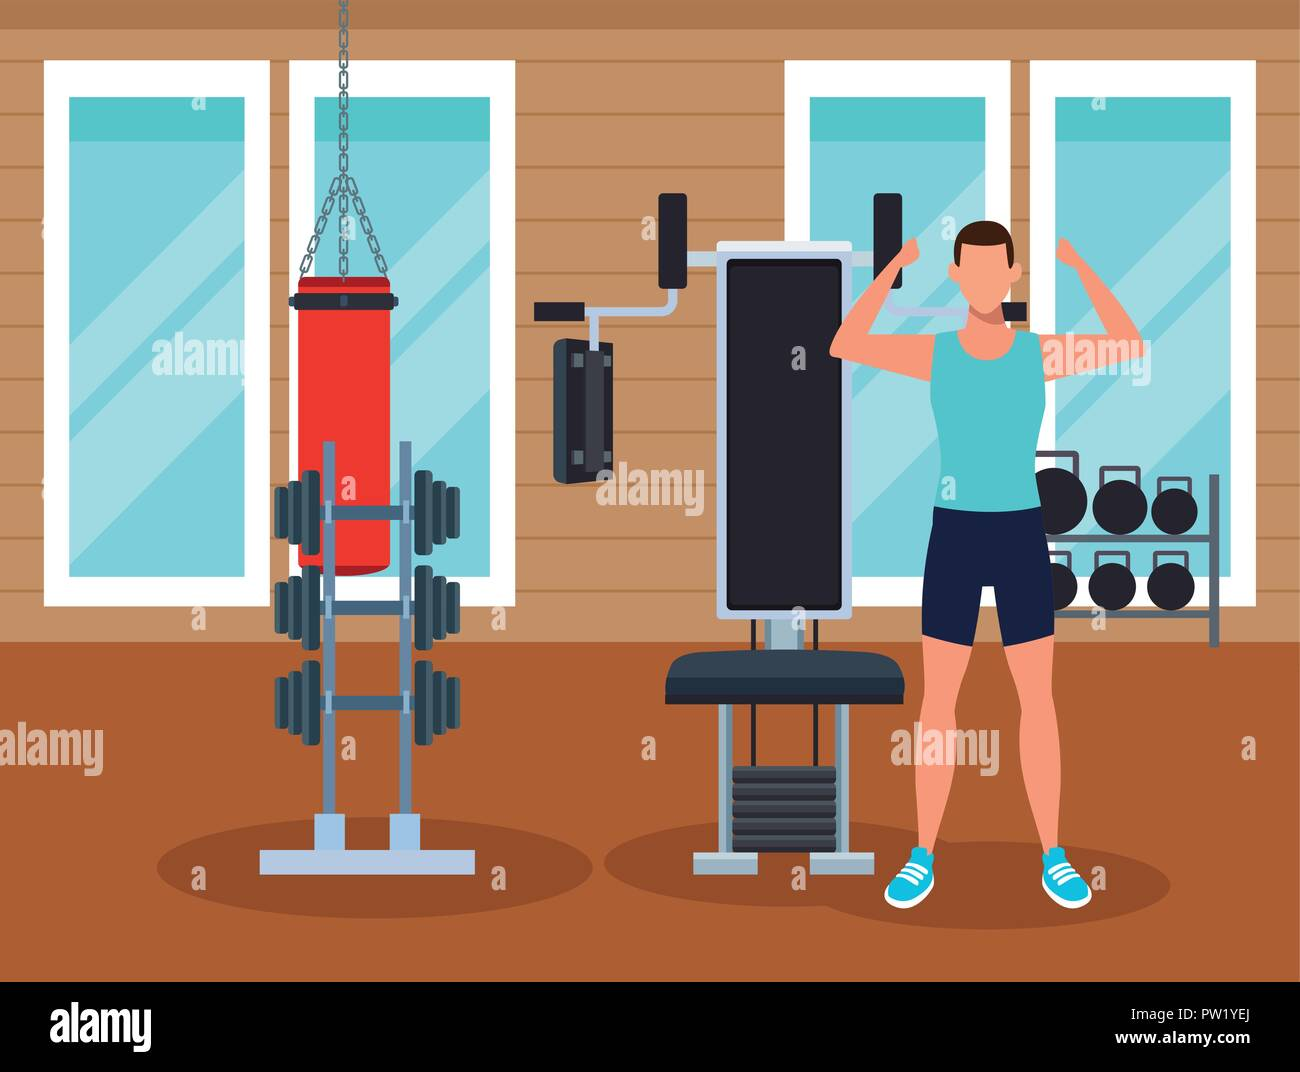 Gym room illustration images stock photos vectors shutterstock